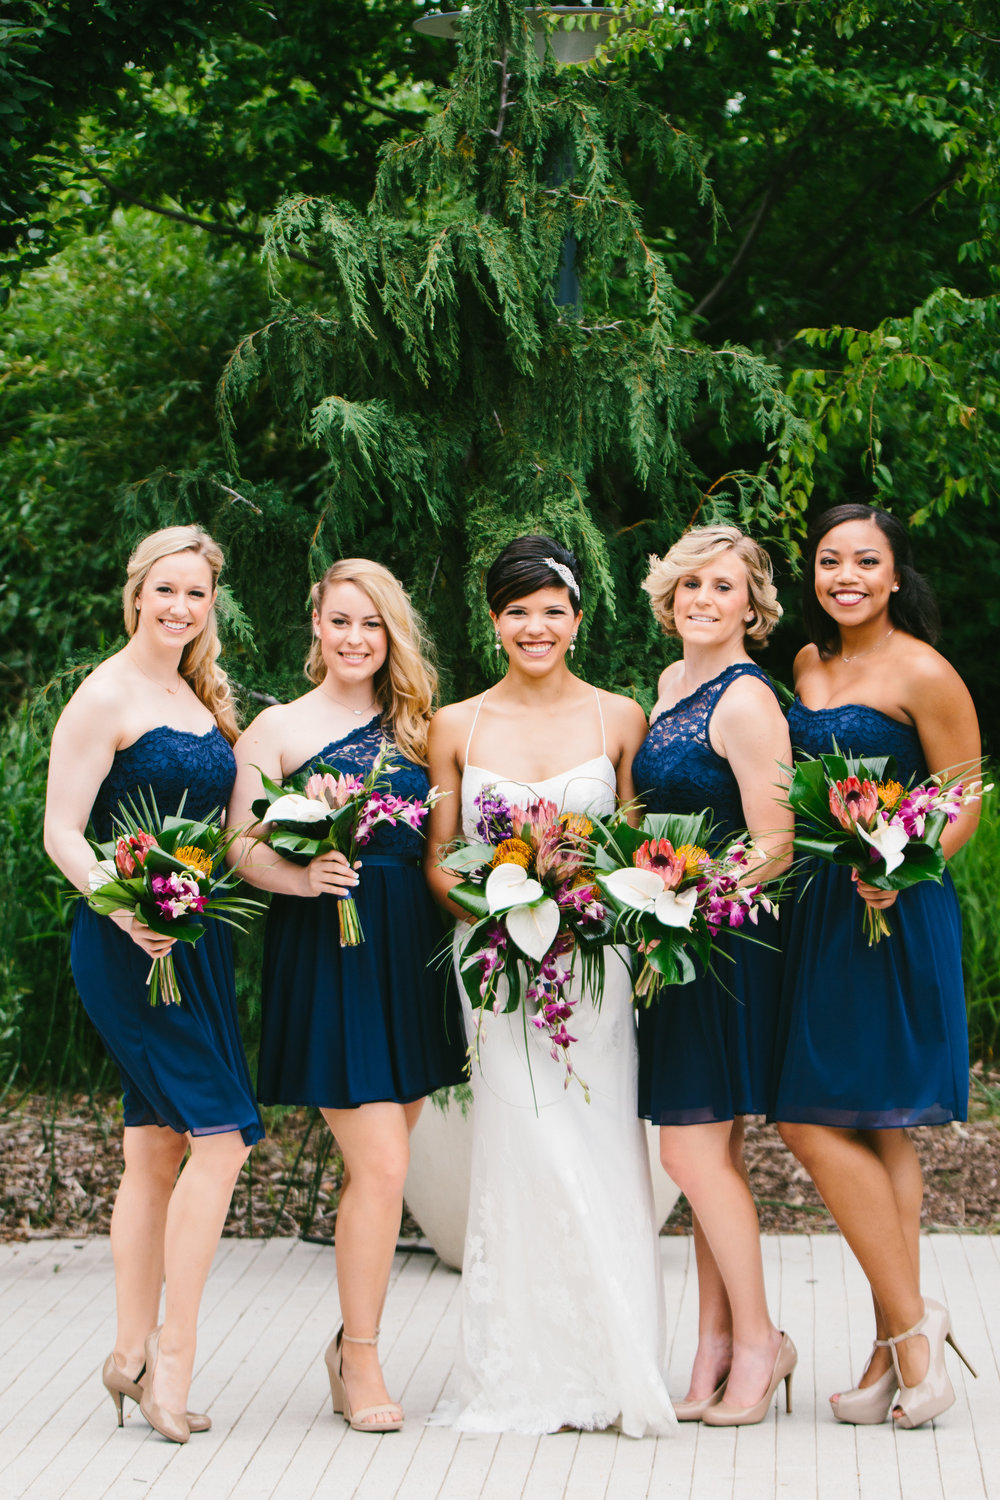 Navy Lace Bridesmaid Dresses - A Botanical Gardens Budget Wedding - From Britt's Eye View Photography